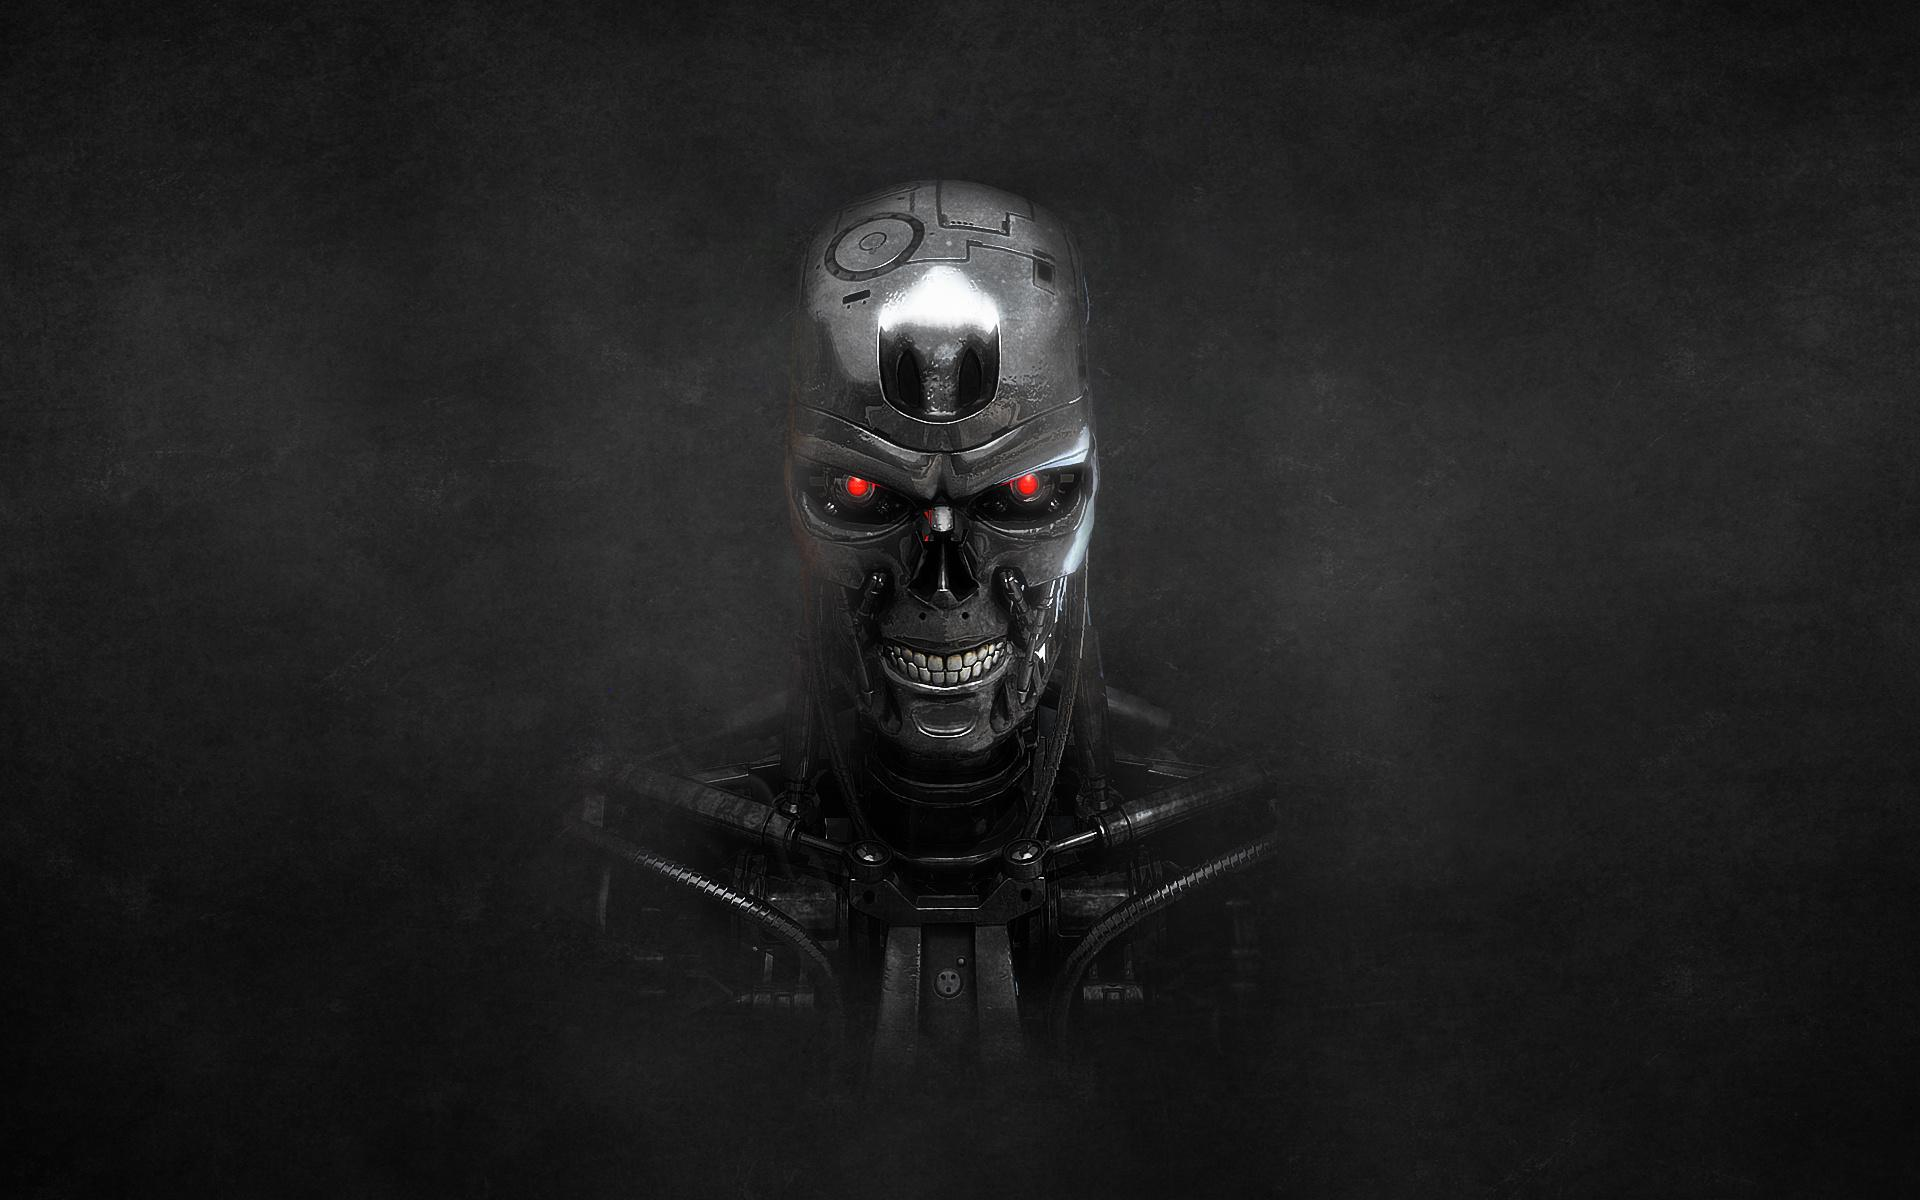 Super HD Wallpapers Terminator Genisys for Laptop 28 1920x1200